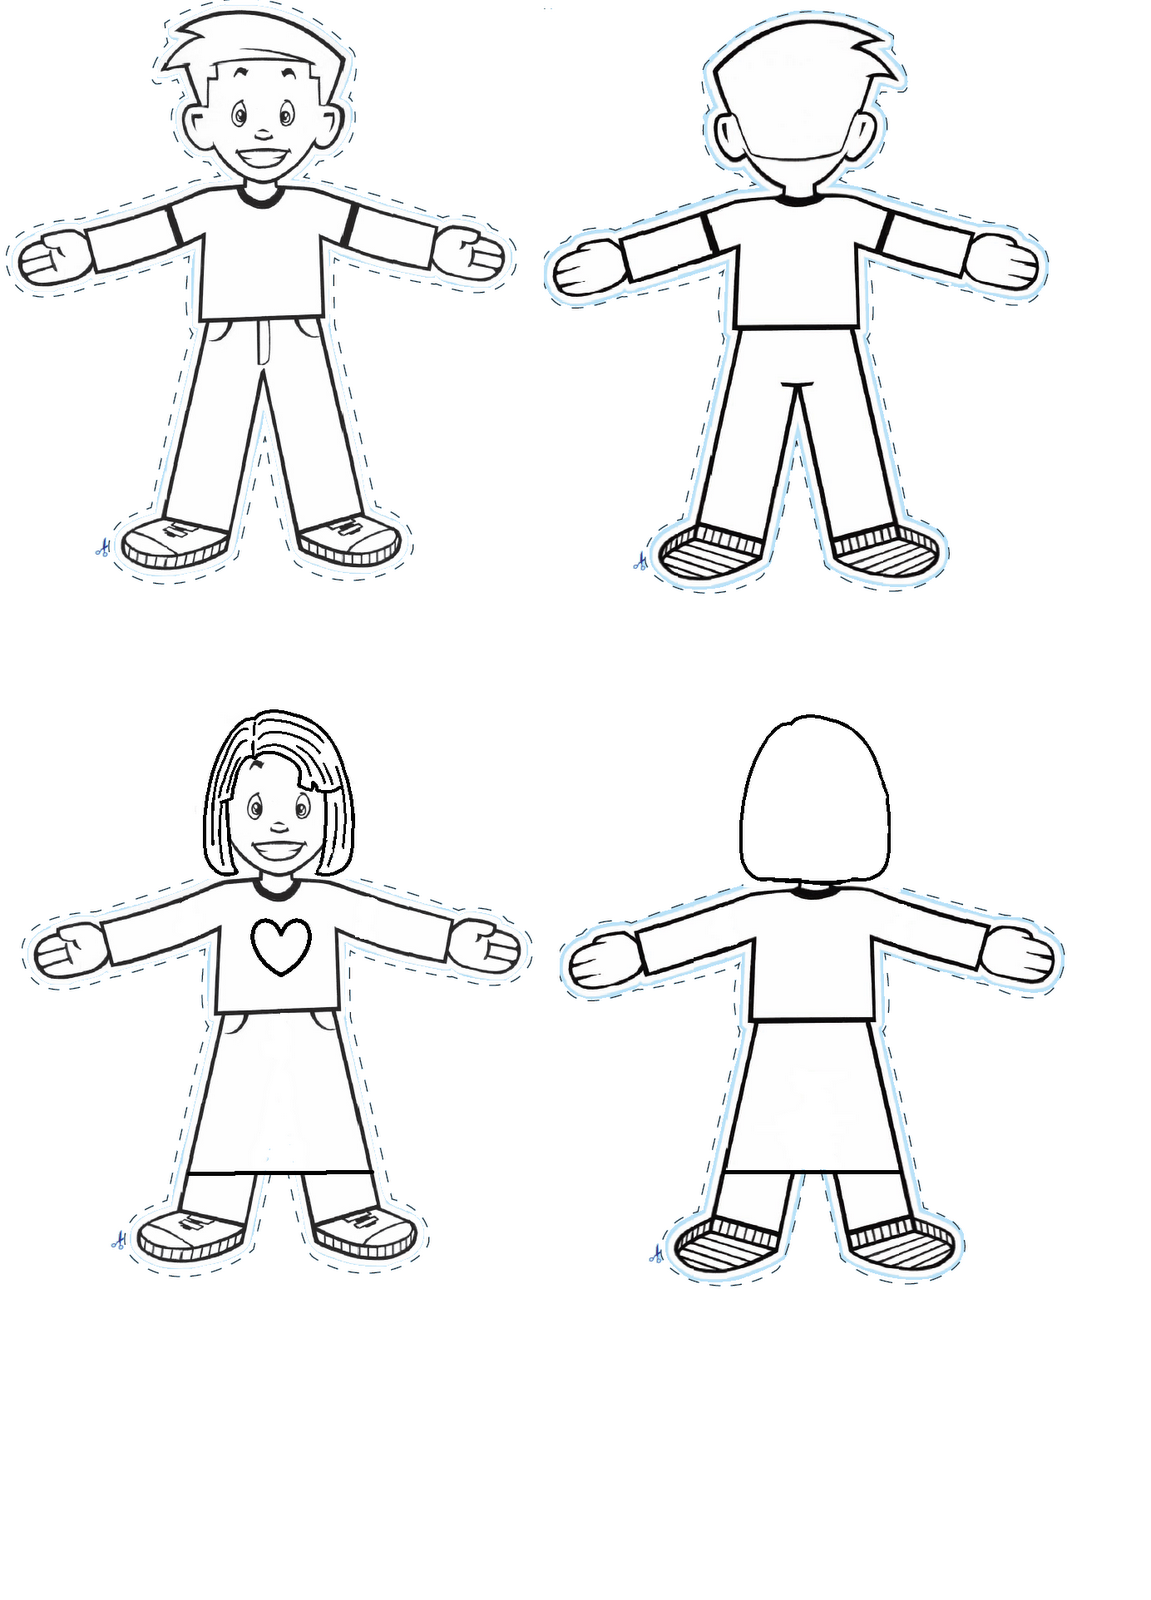 Flat stanley coloring page coloring home for Free printable flat stanley template